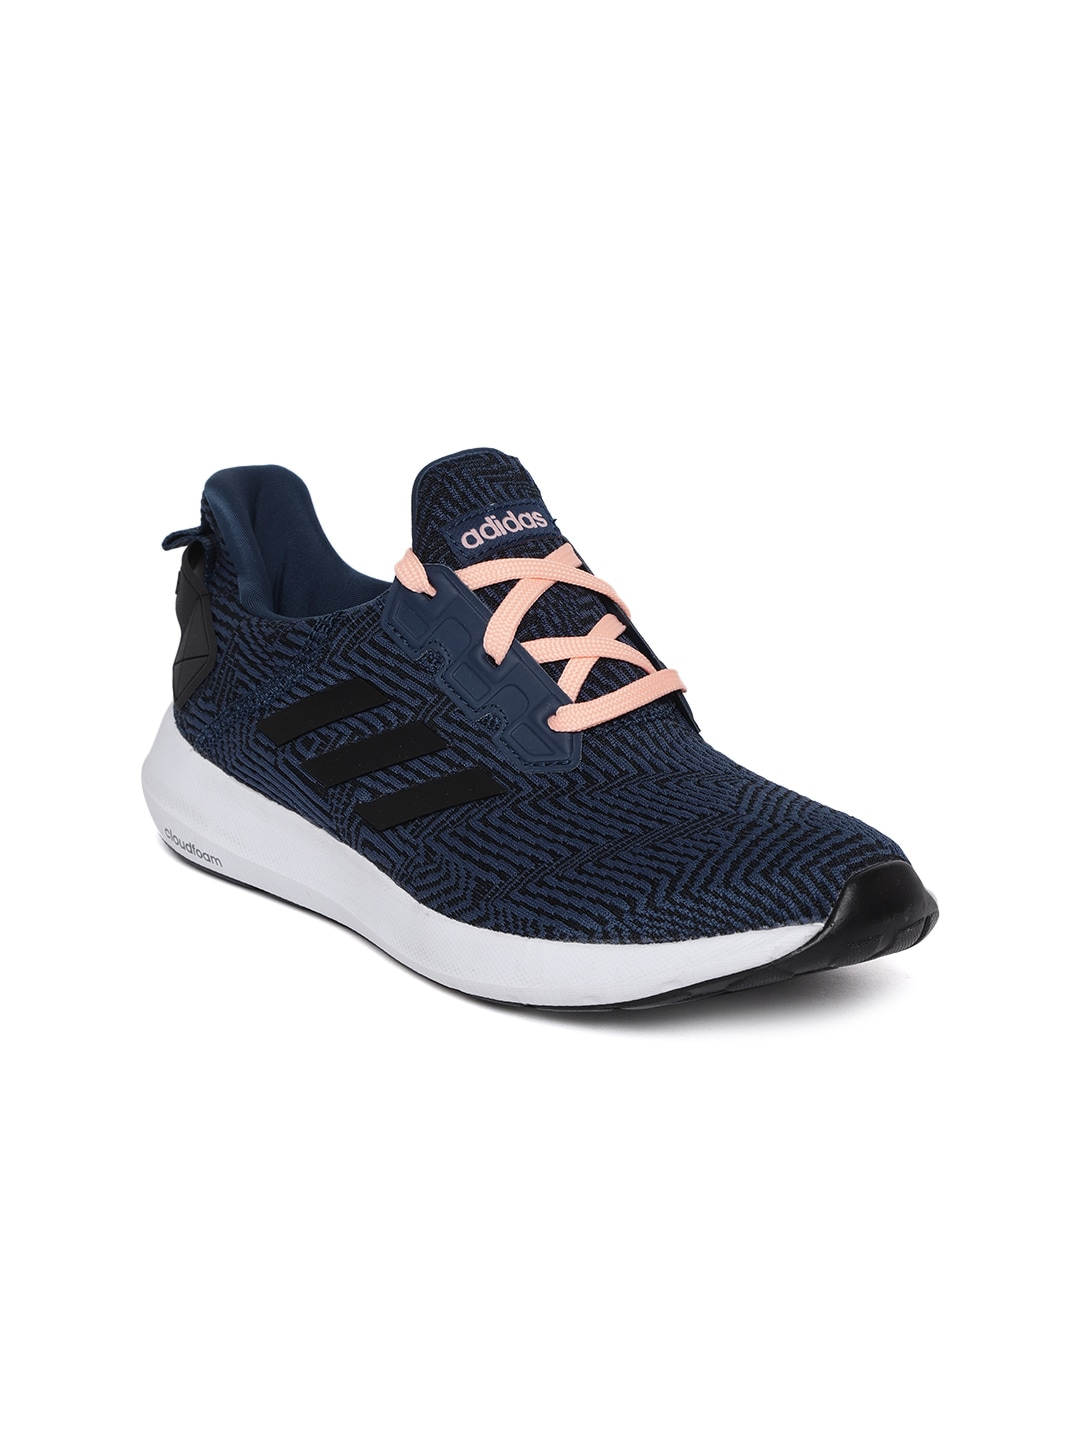 huge selection of 5bc4a 89a2a adidas - Exclusive adidas Online Store in India at Myntra